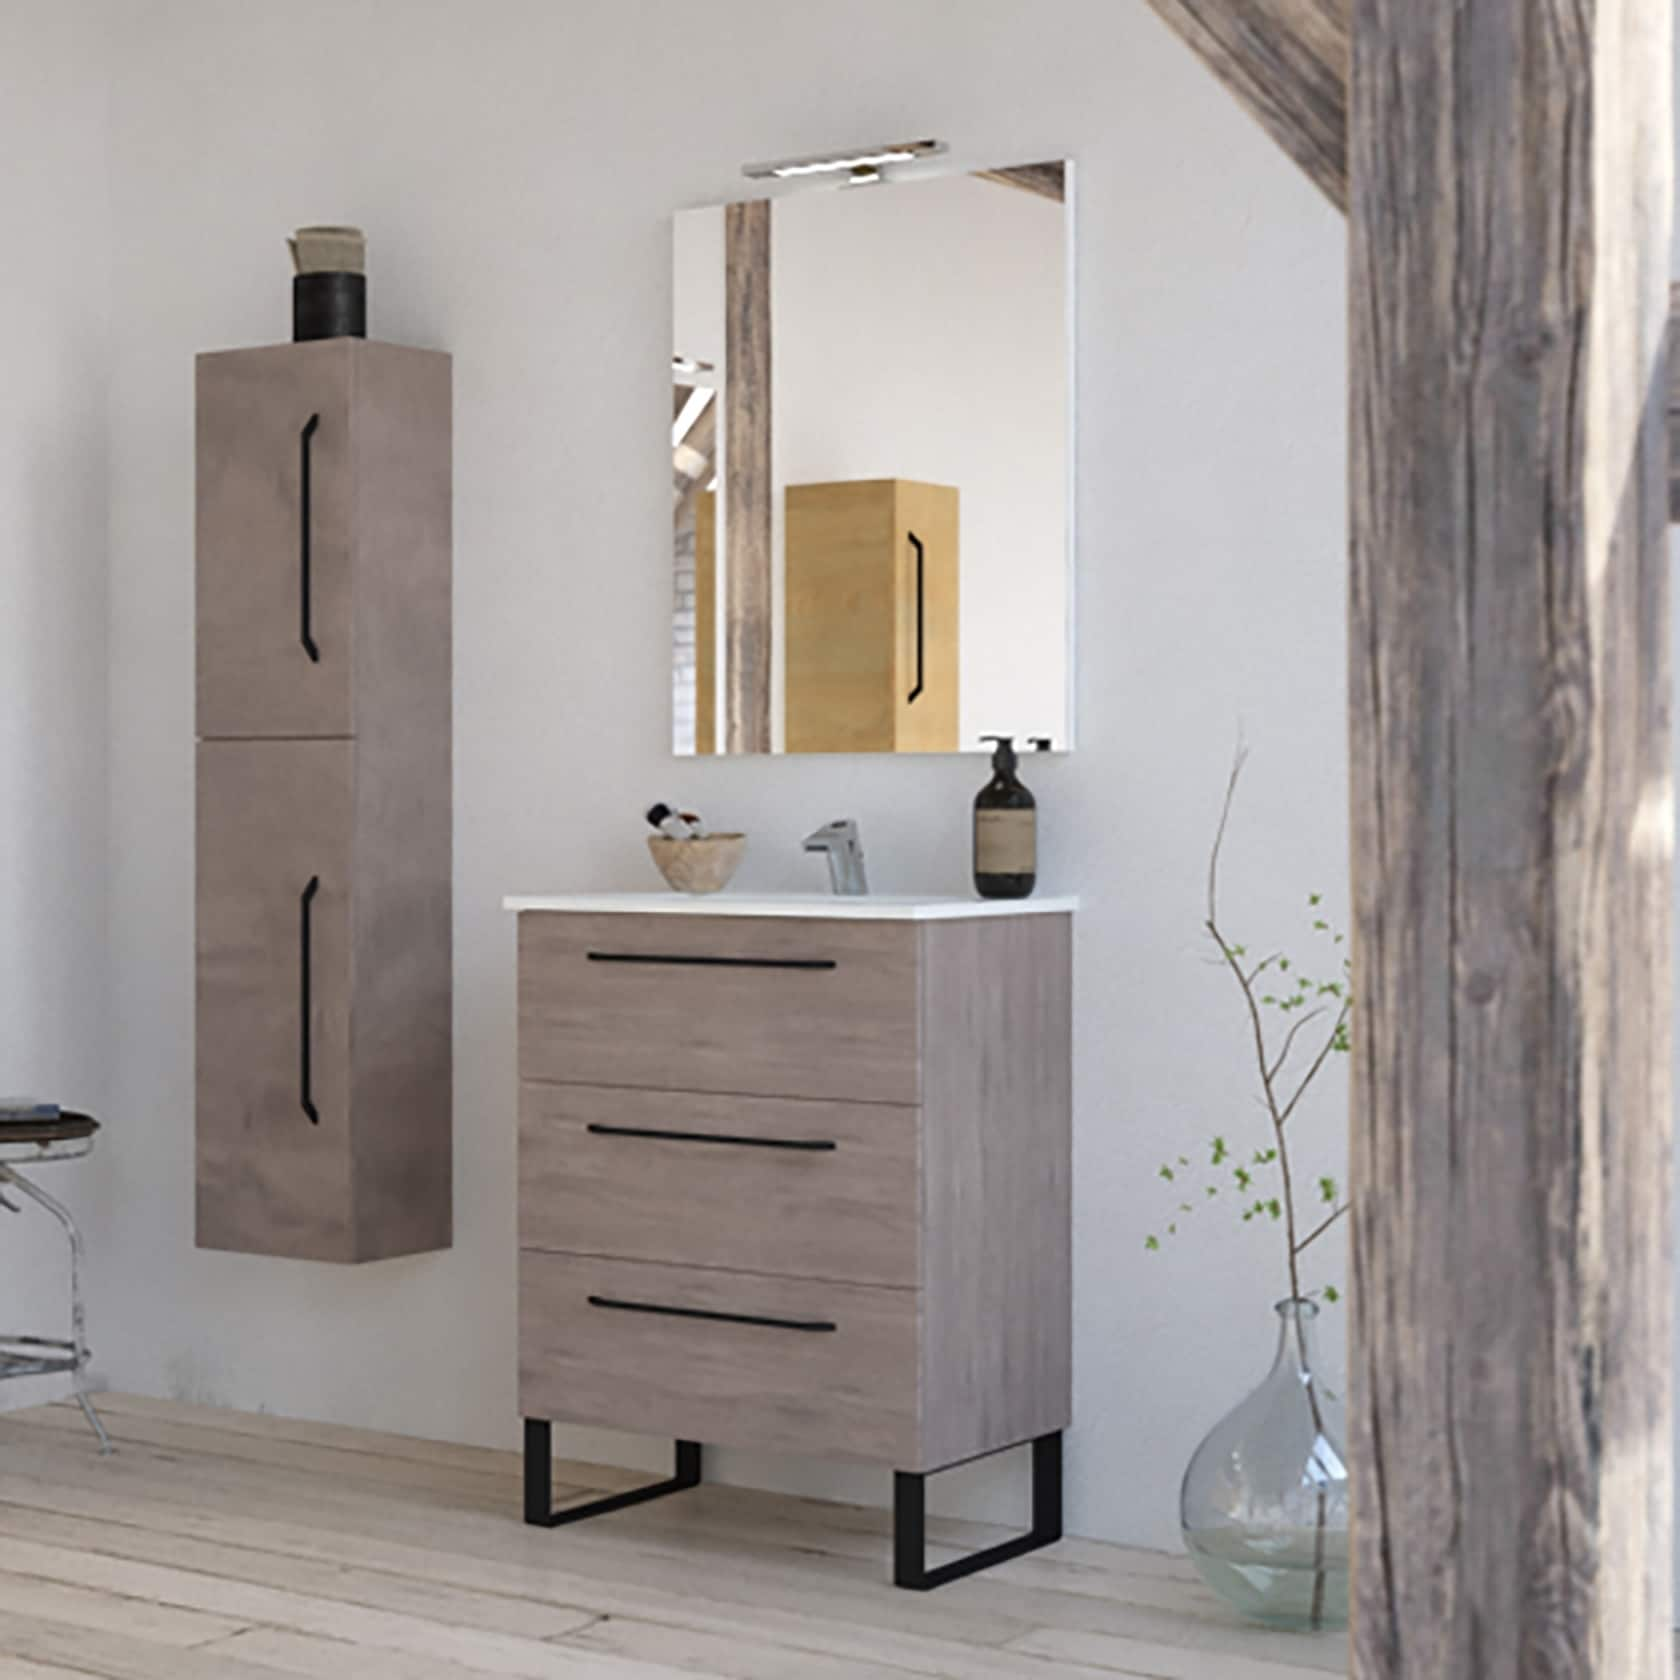 Shop 24 Modern Bathroom Vanity Set Dakota Chicago Grey Oak Wood Chrome Black Handles And Legs On Sale Overstock 30328577 Brown Silver Oak Finish